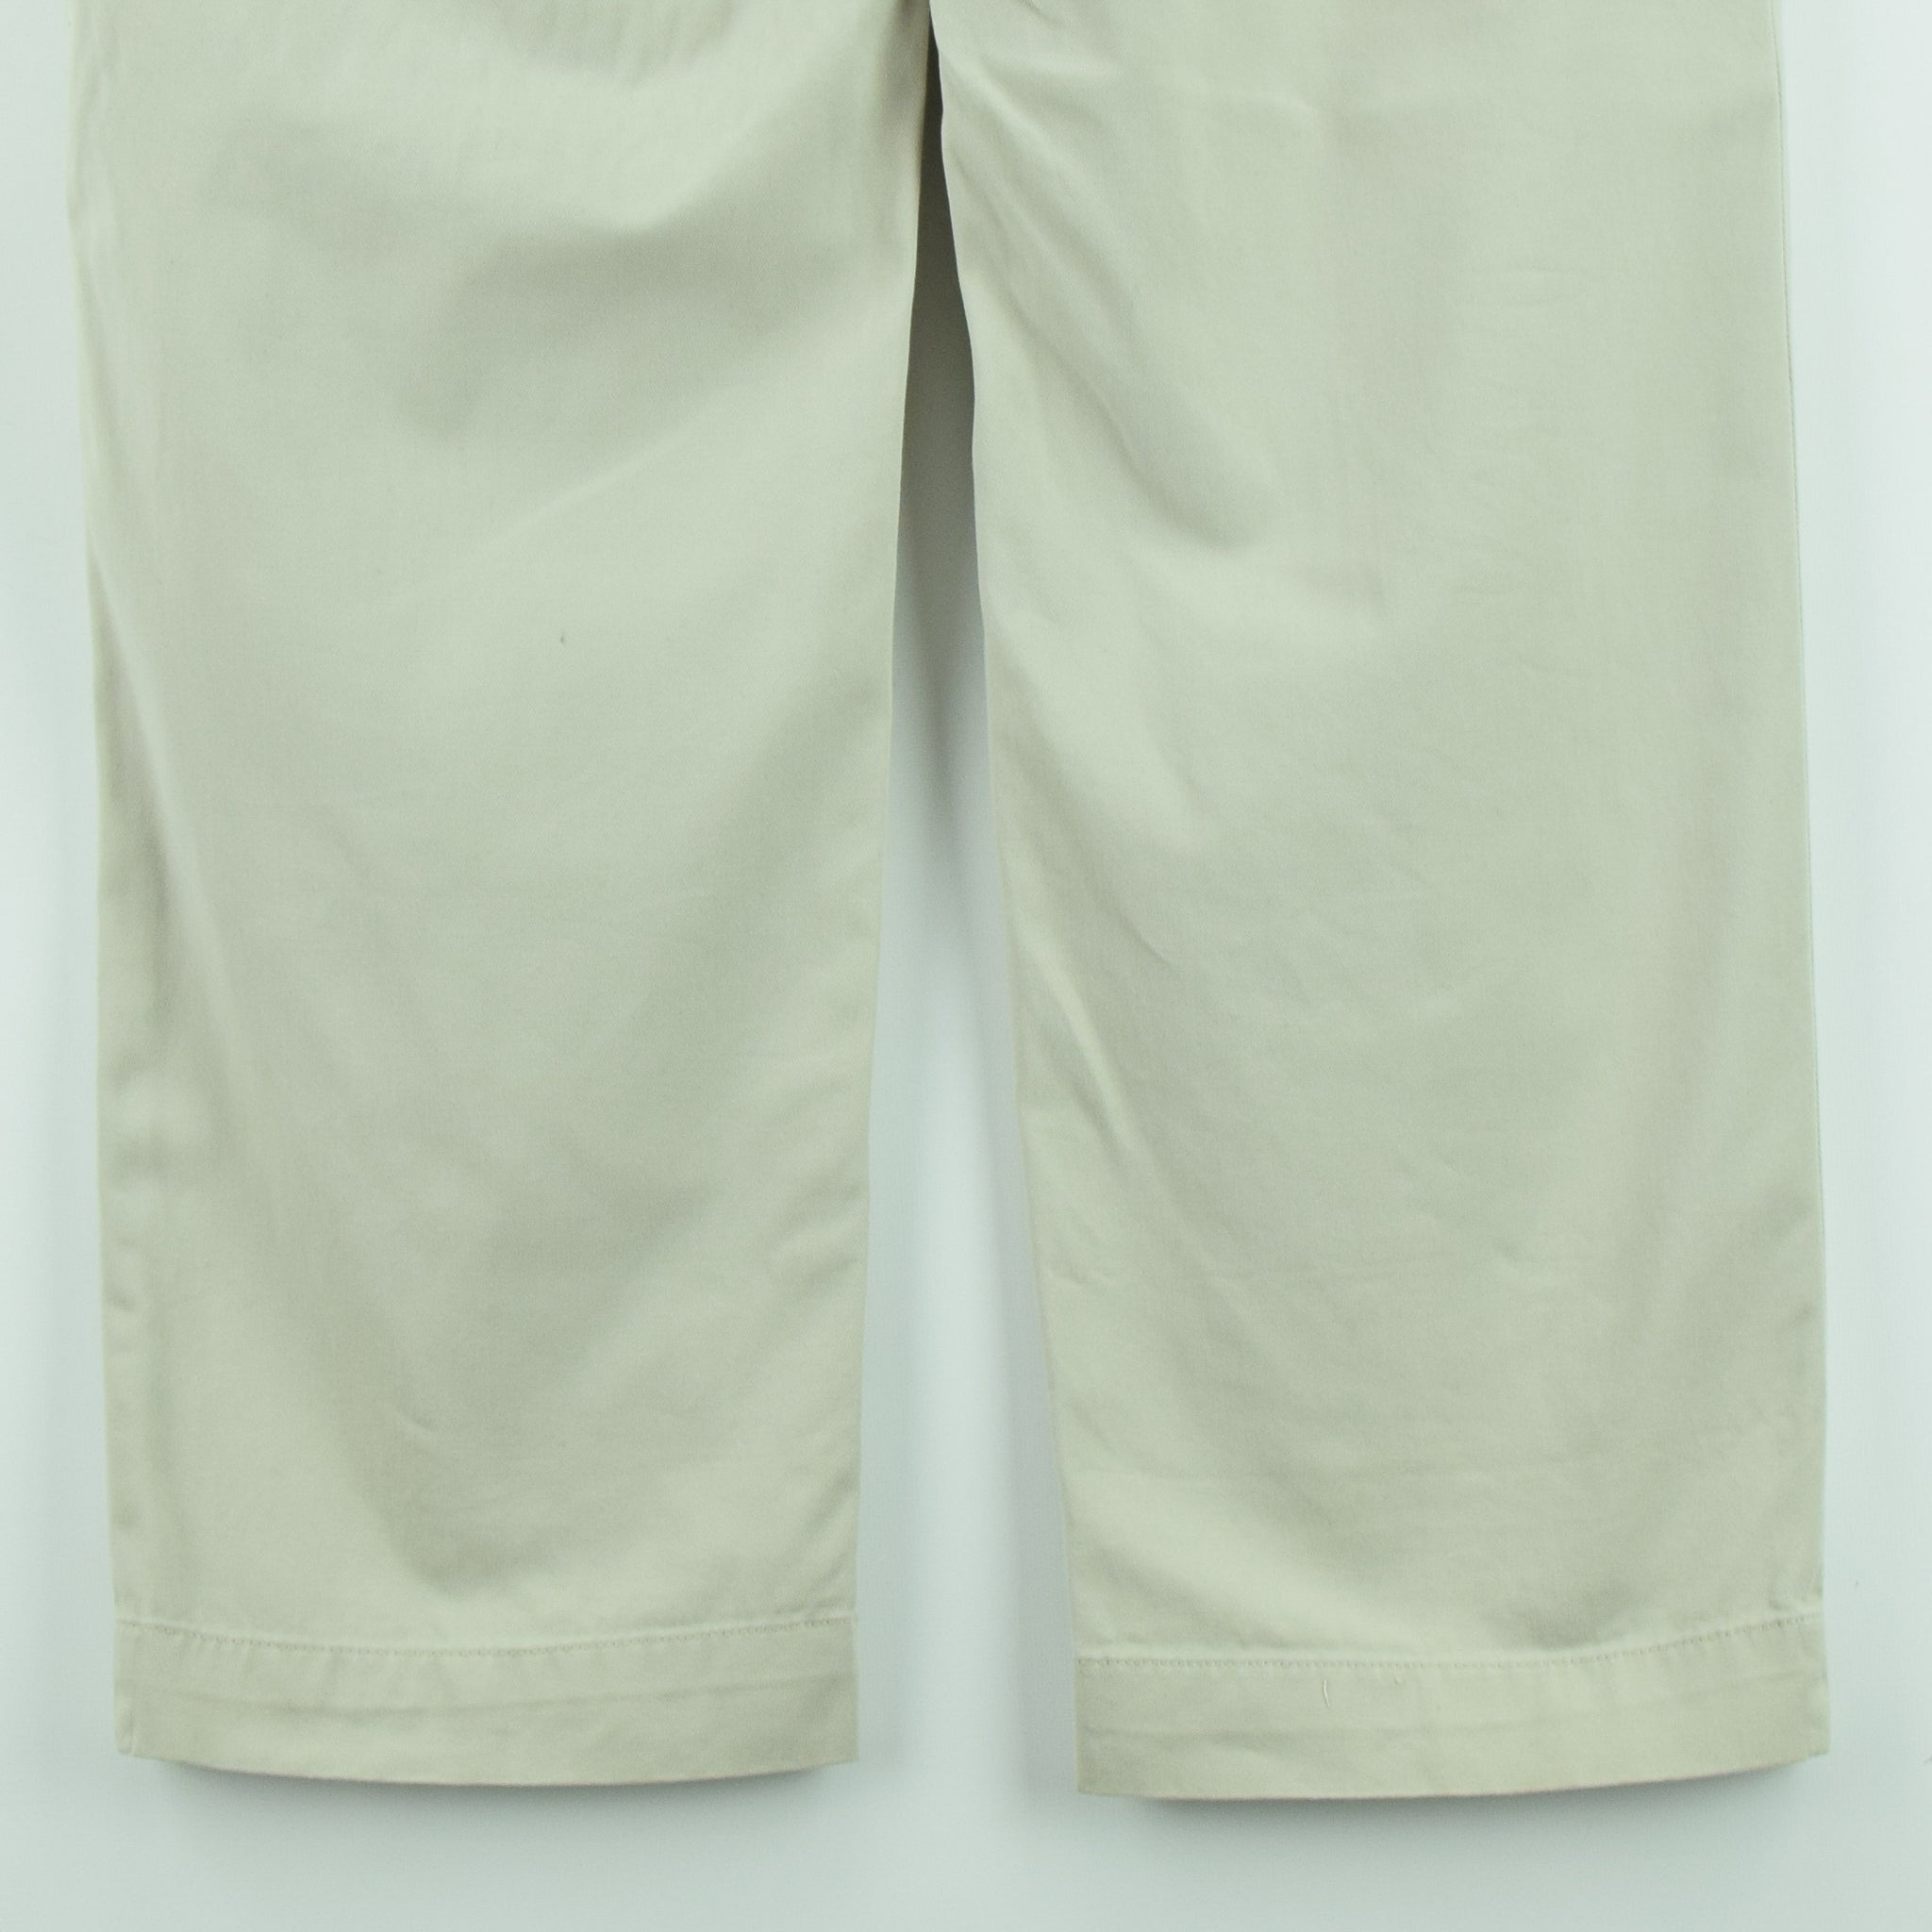 Ralph Lauren Polo Prospect Pant Chinos Stone Flat Front Trousers 32 W 30 L back hem